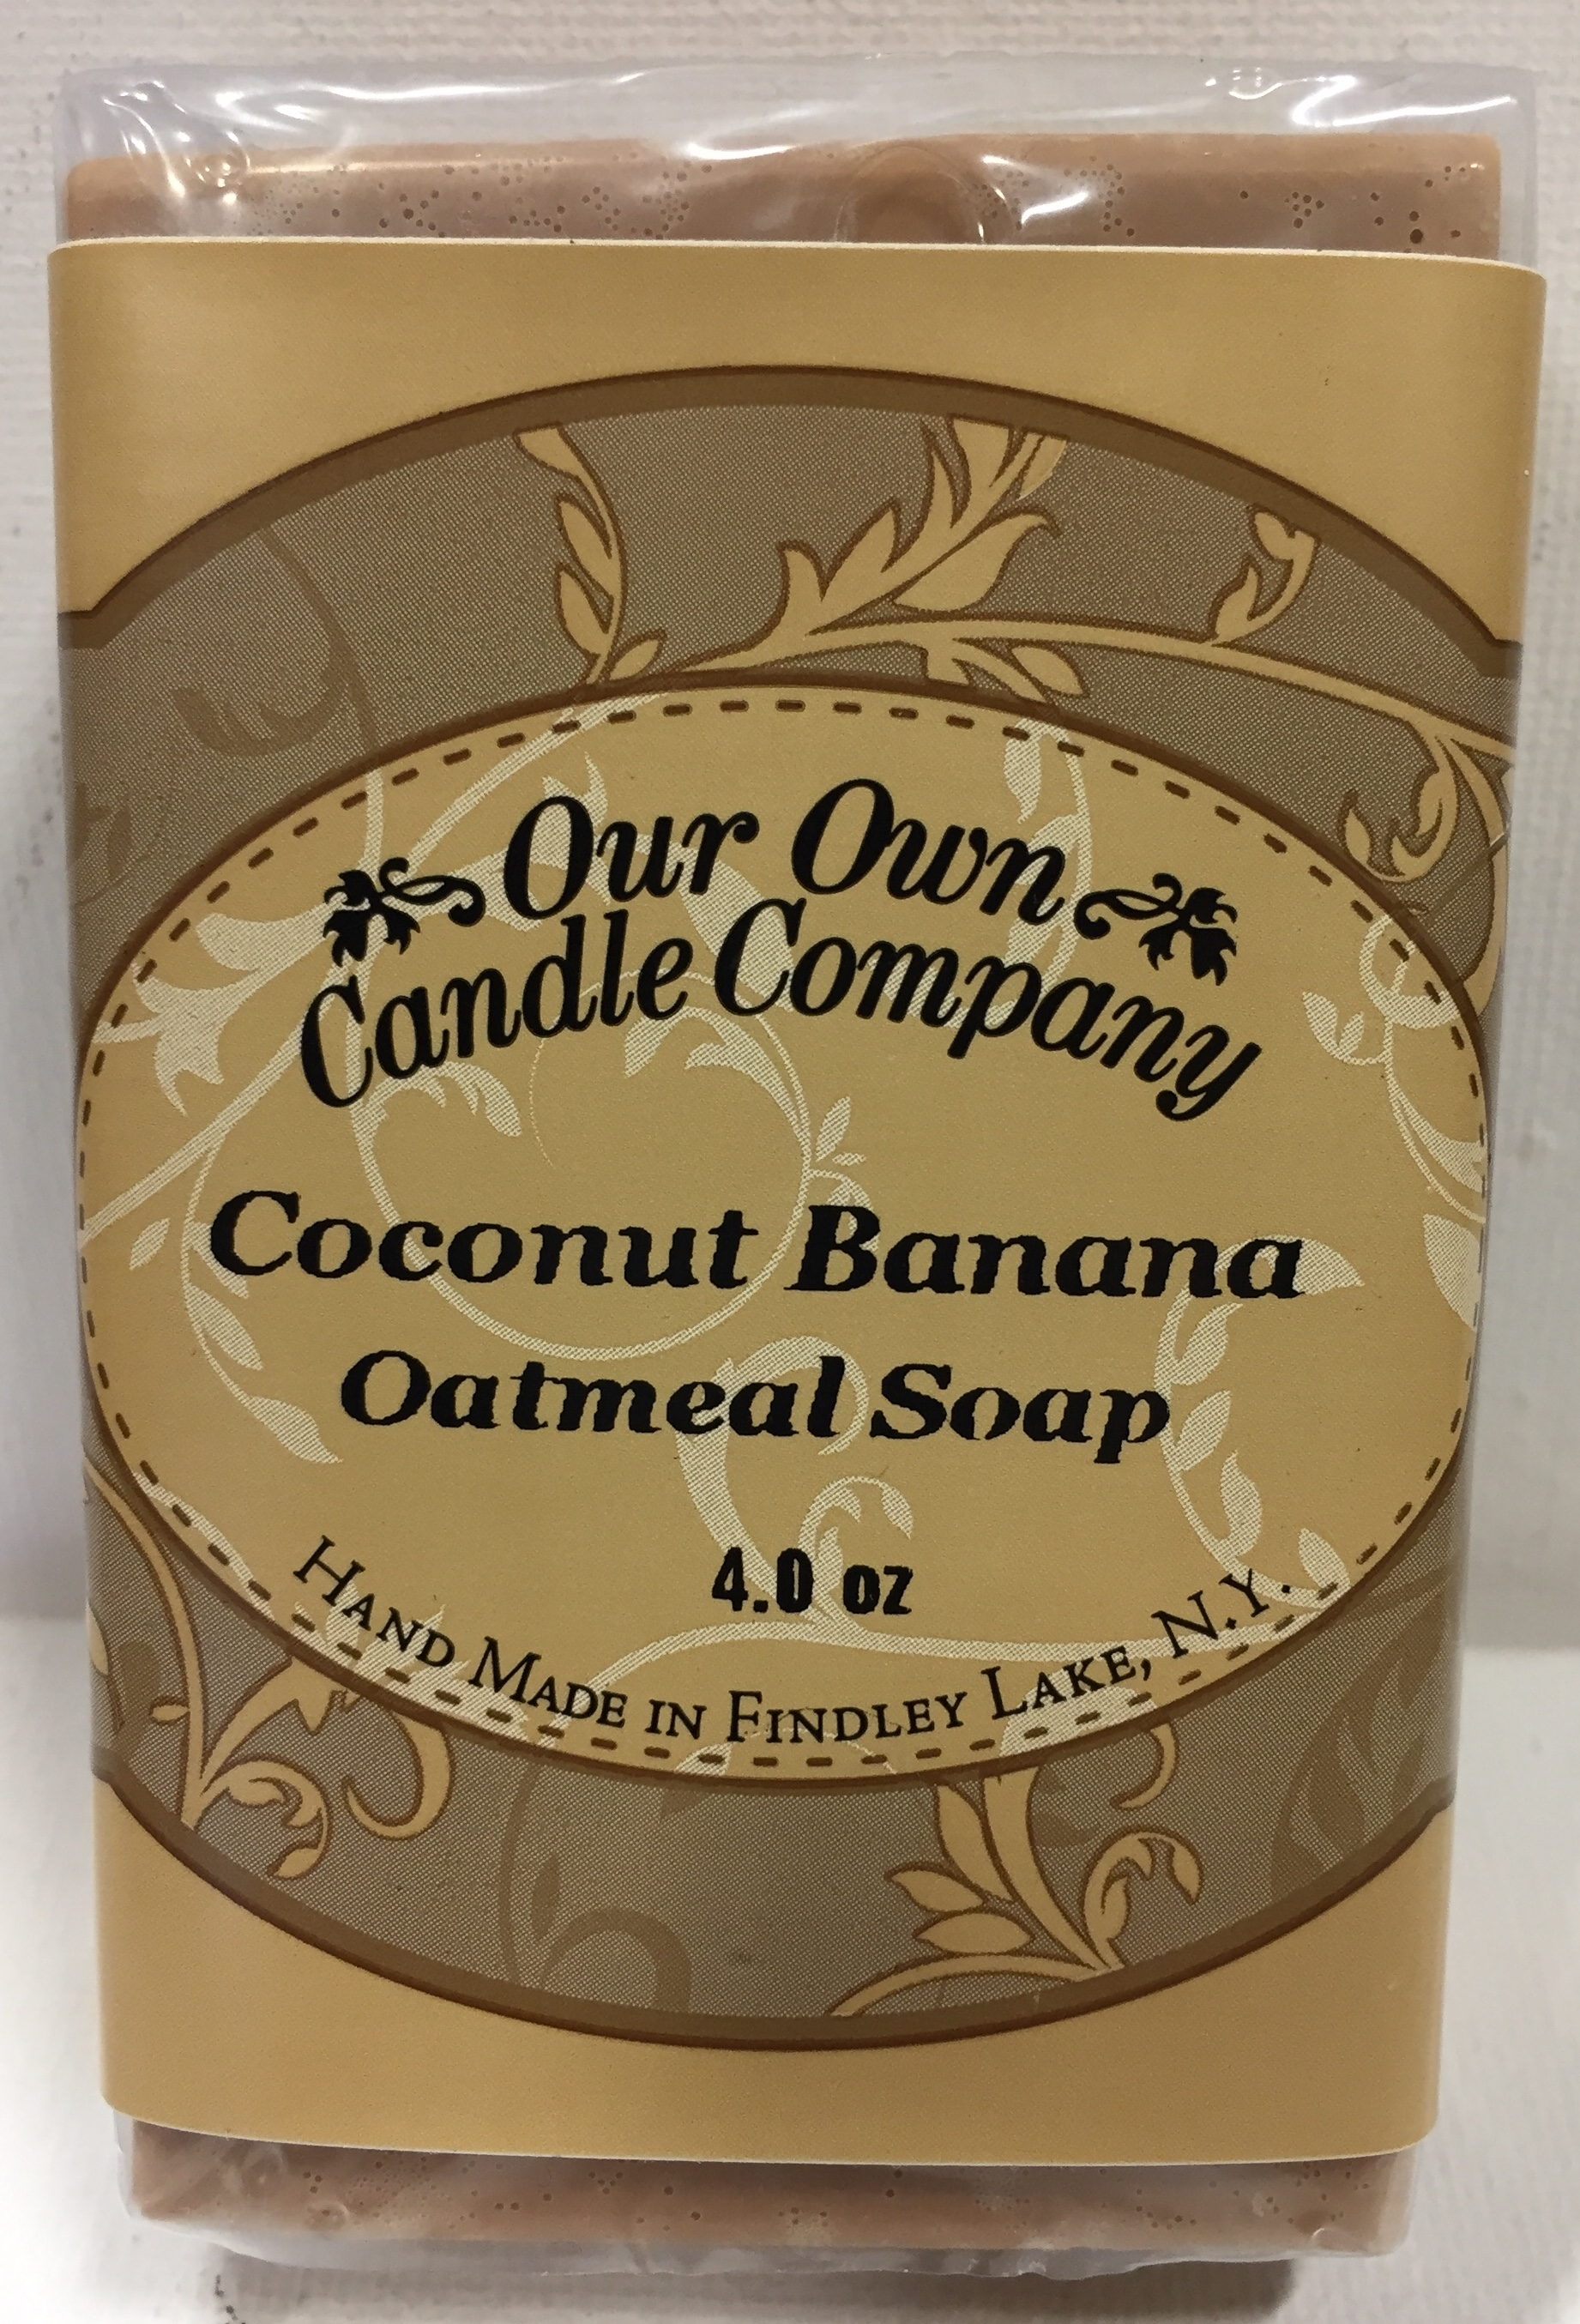 COCONUT BANANA OATMEAL SOAP 4 OZ UPC# 813542026564